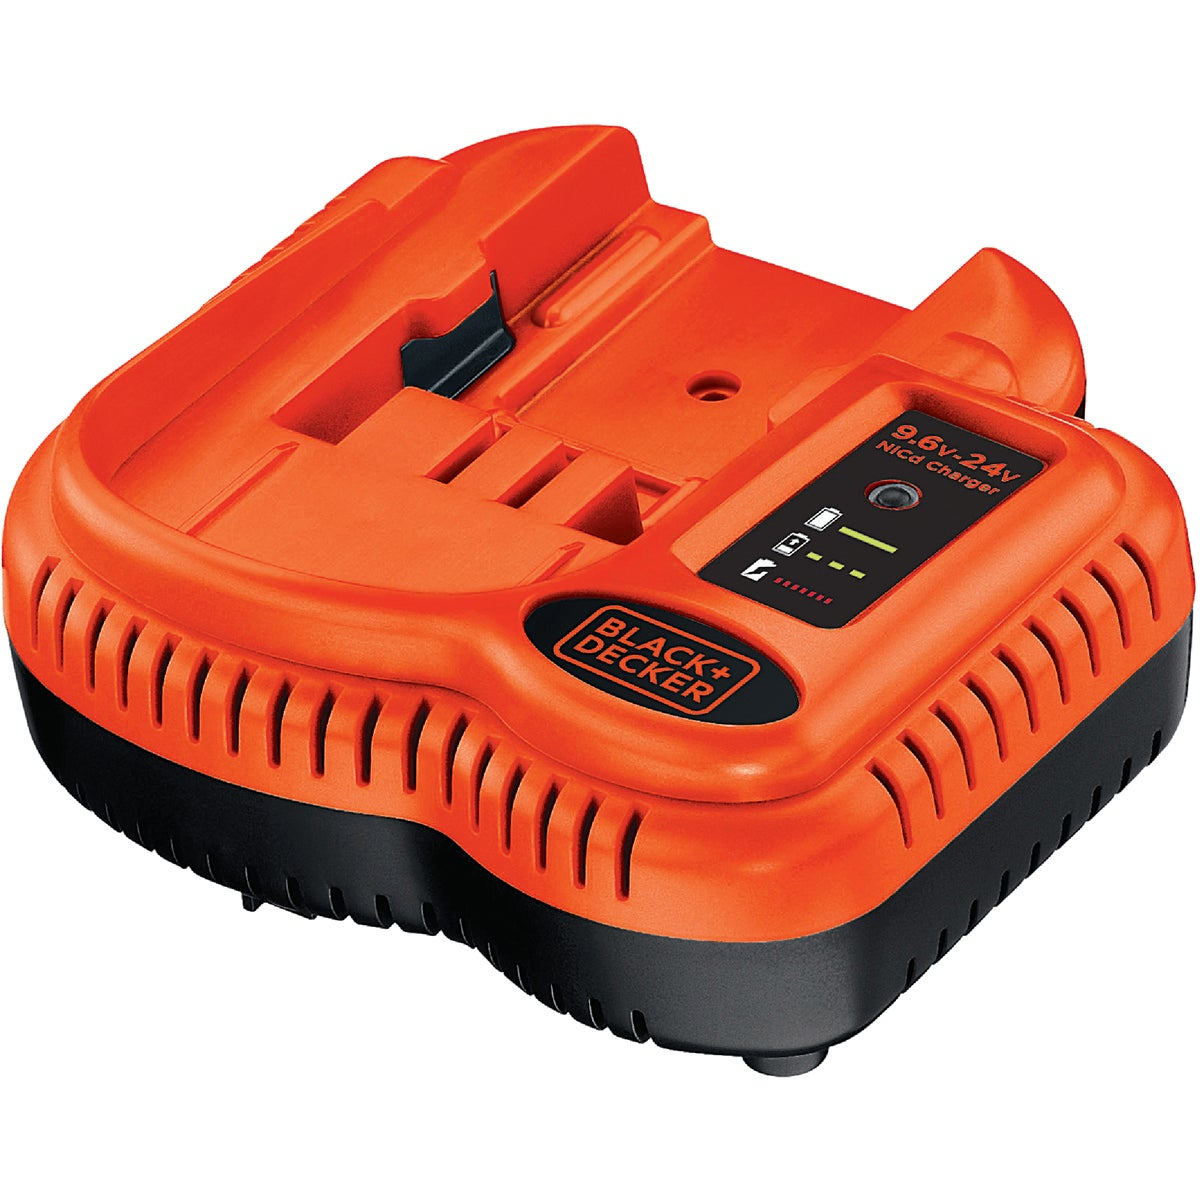 BATTERY CHARGER - FSMVC by Black & Decker